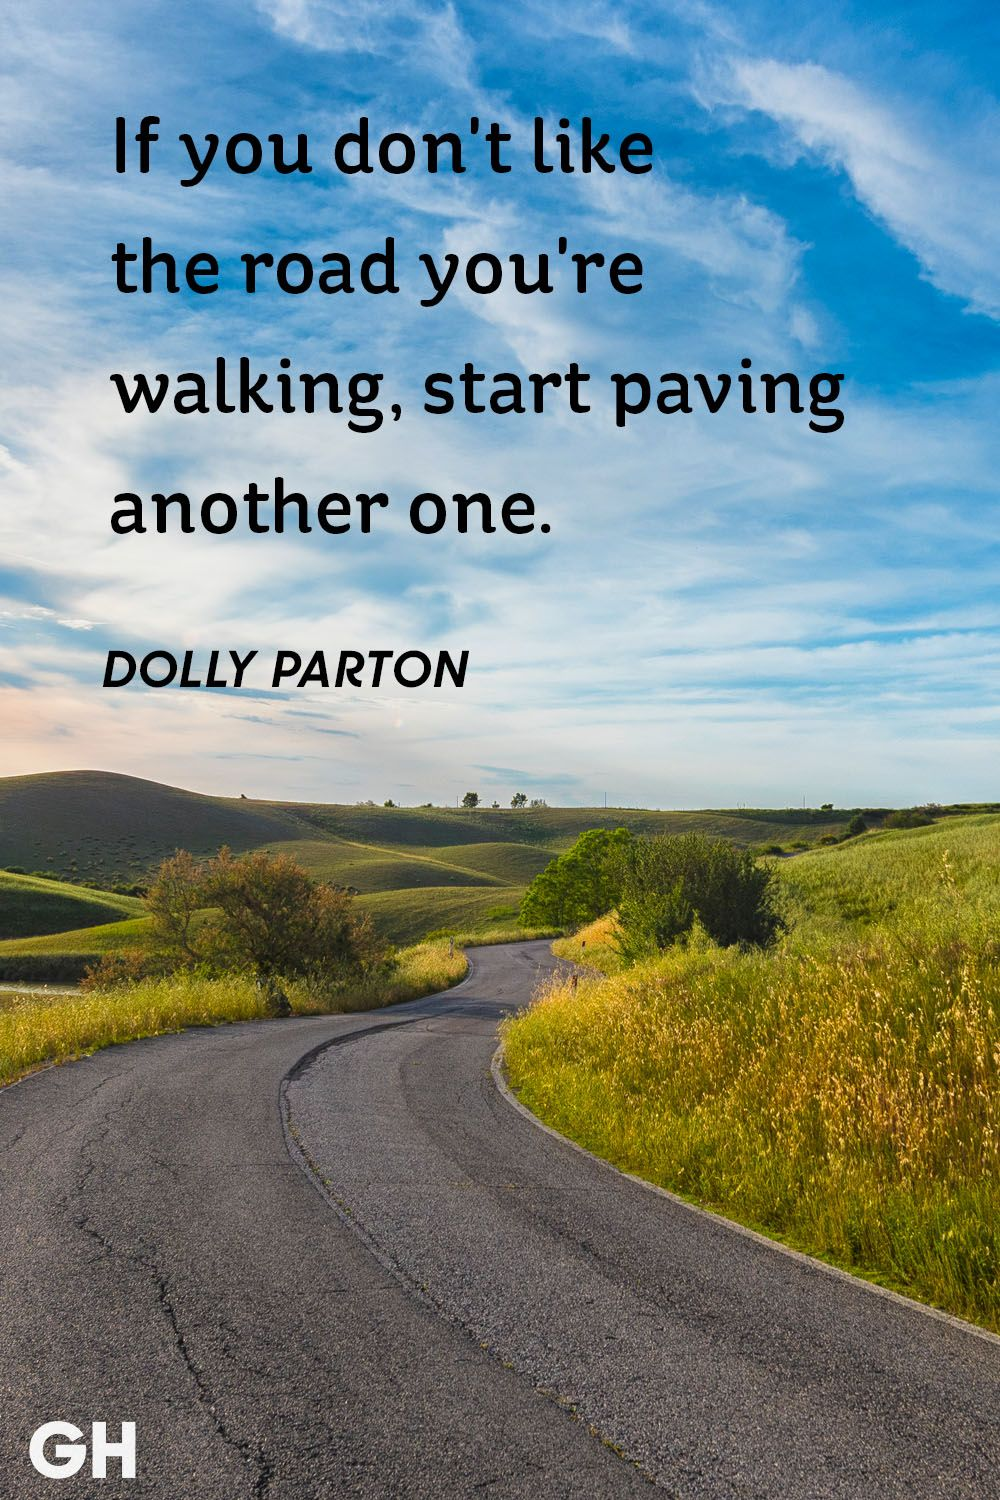 Image of: Hope Dolly Parton Beautiful Life Quote Good Housekeeping 30 Inspirational Quotes About Life Beautiful Famous Life Quotes